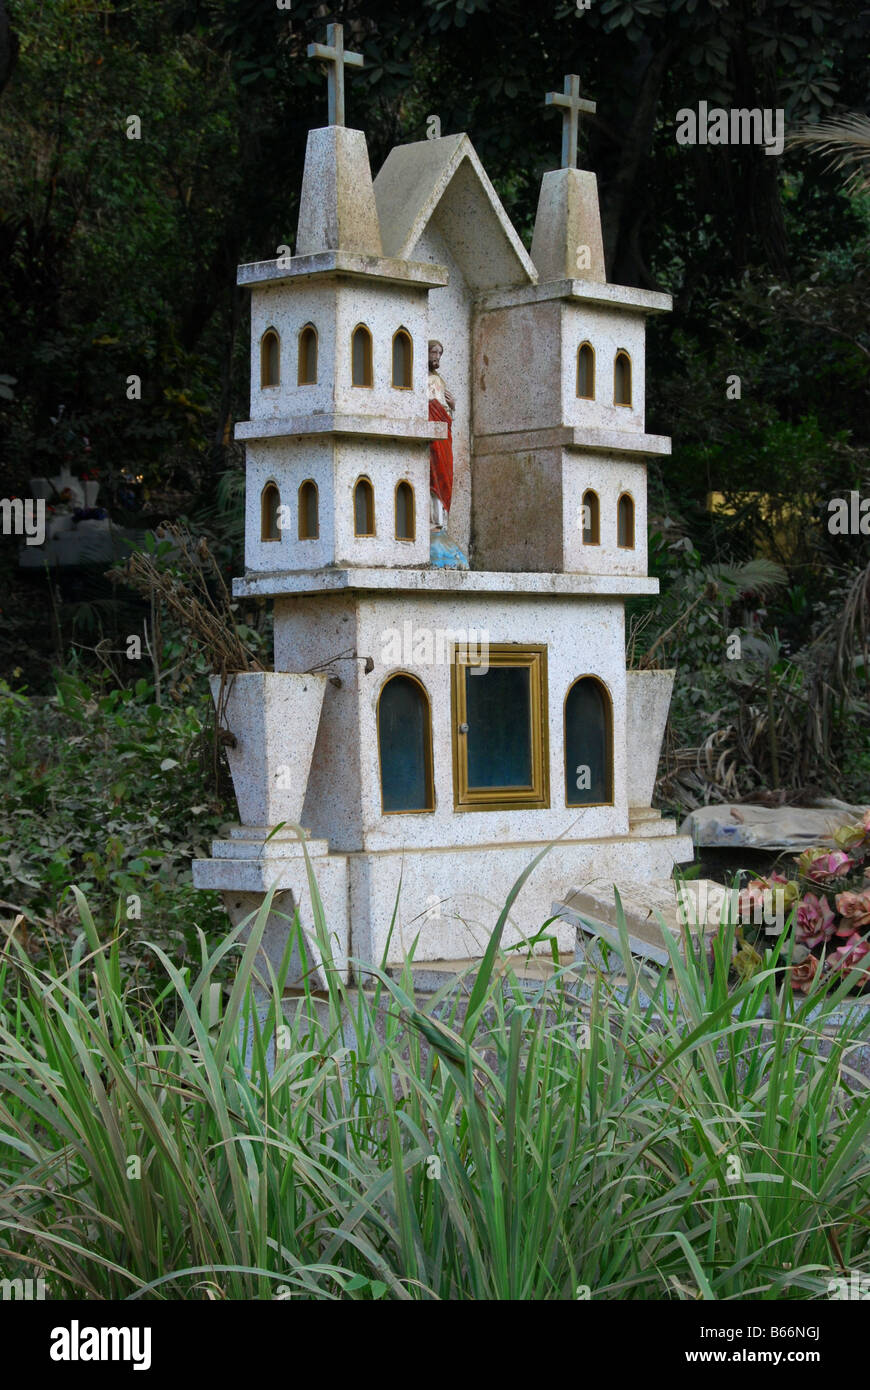 folkloric tomb surrounded by jungle vegetation in Sayulita, Mexico - Stock Image